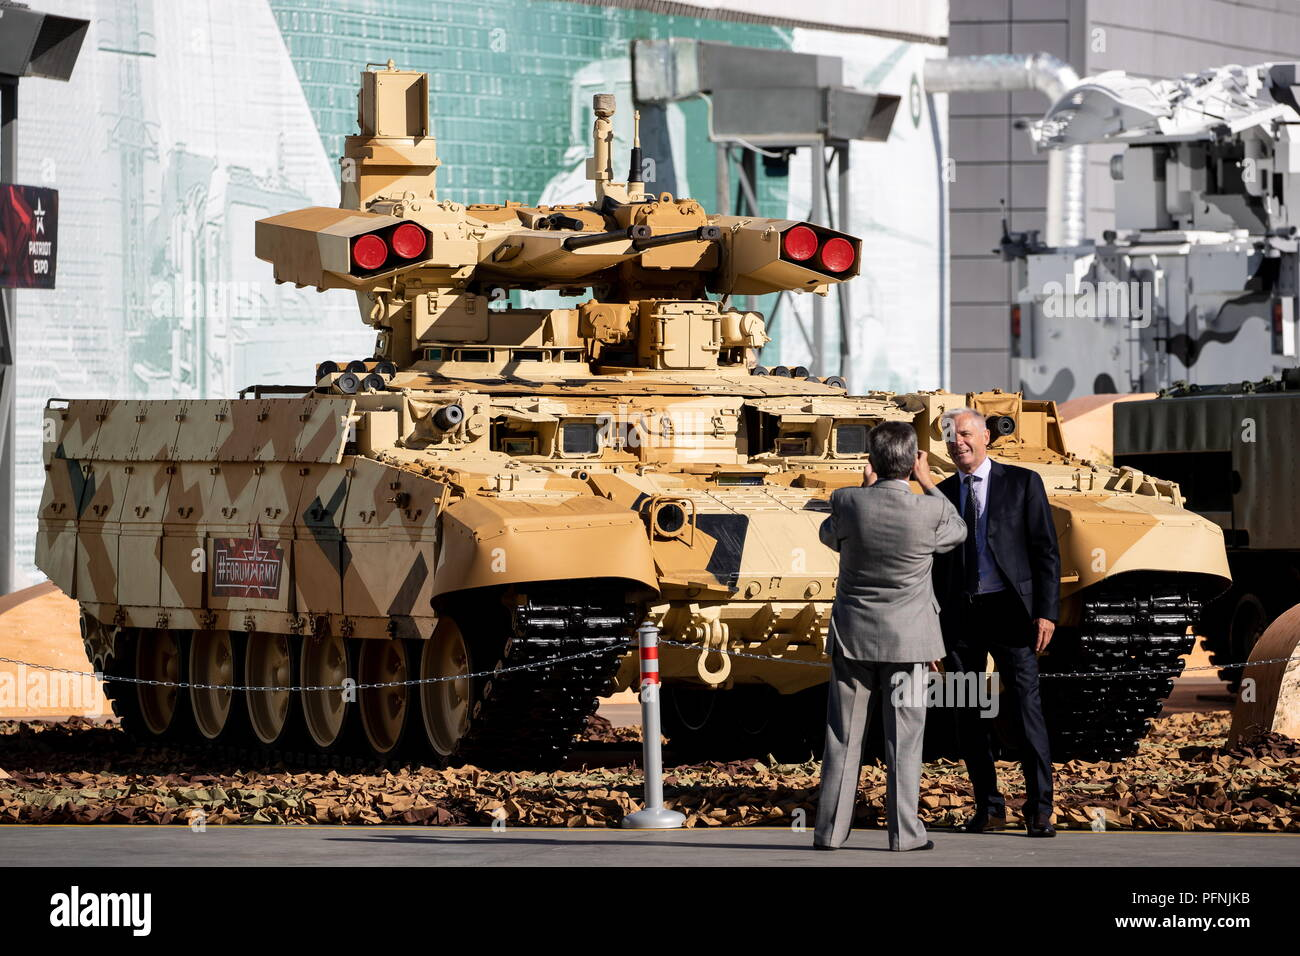 Russia. 22nd Aug, 2018. MOSCOW REGION, RUSSIA - AUGUST 22, 2018: A BMPT Terminator-2 armoured fighting vehicle on display at the Army 2018 International Military and Technical Forum, in Patriot Park. Sergei Bobylev/TASS Credit: ITAR-TASS News Agency/Alamy Live News - Stock Image